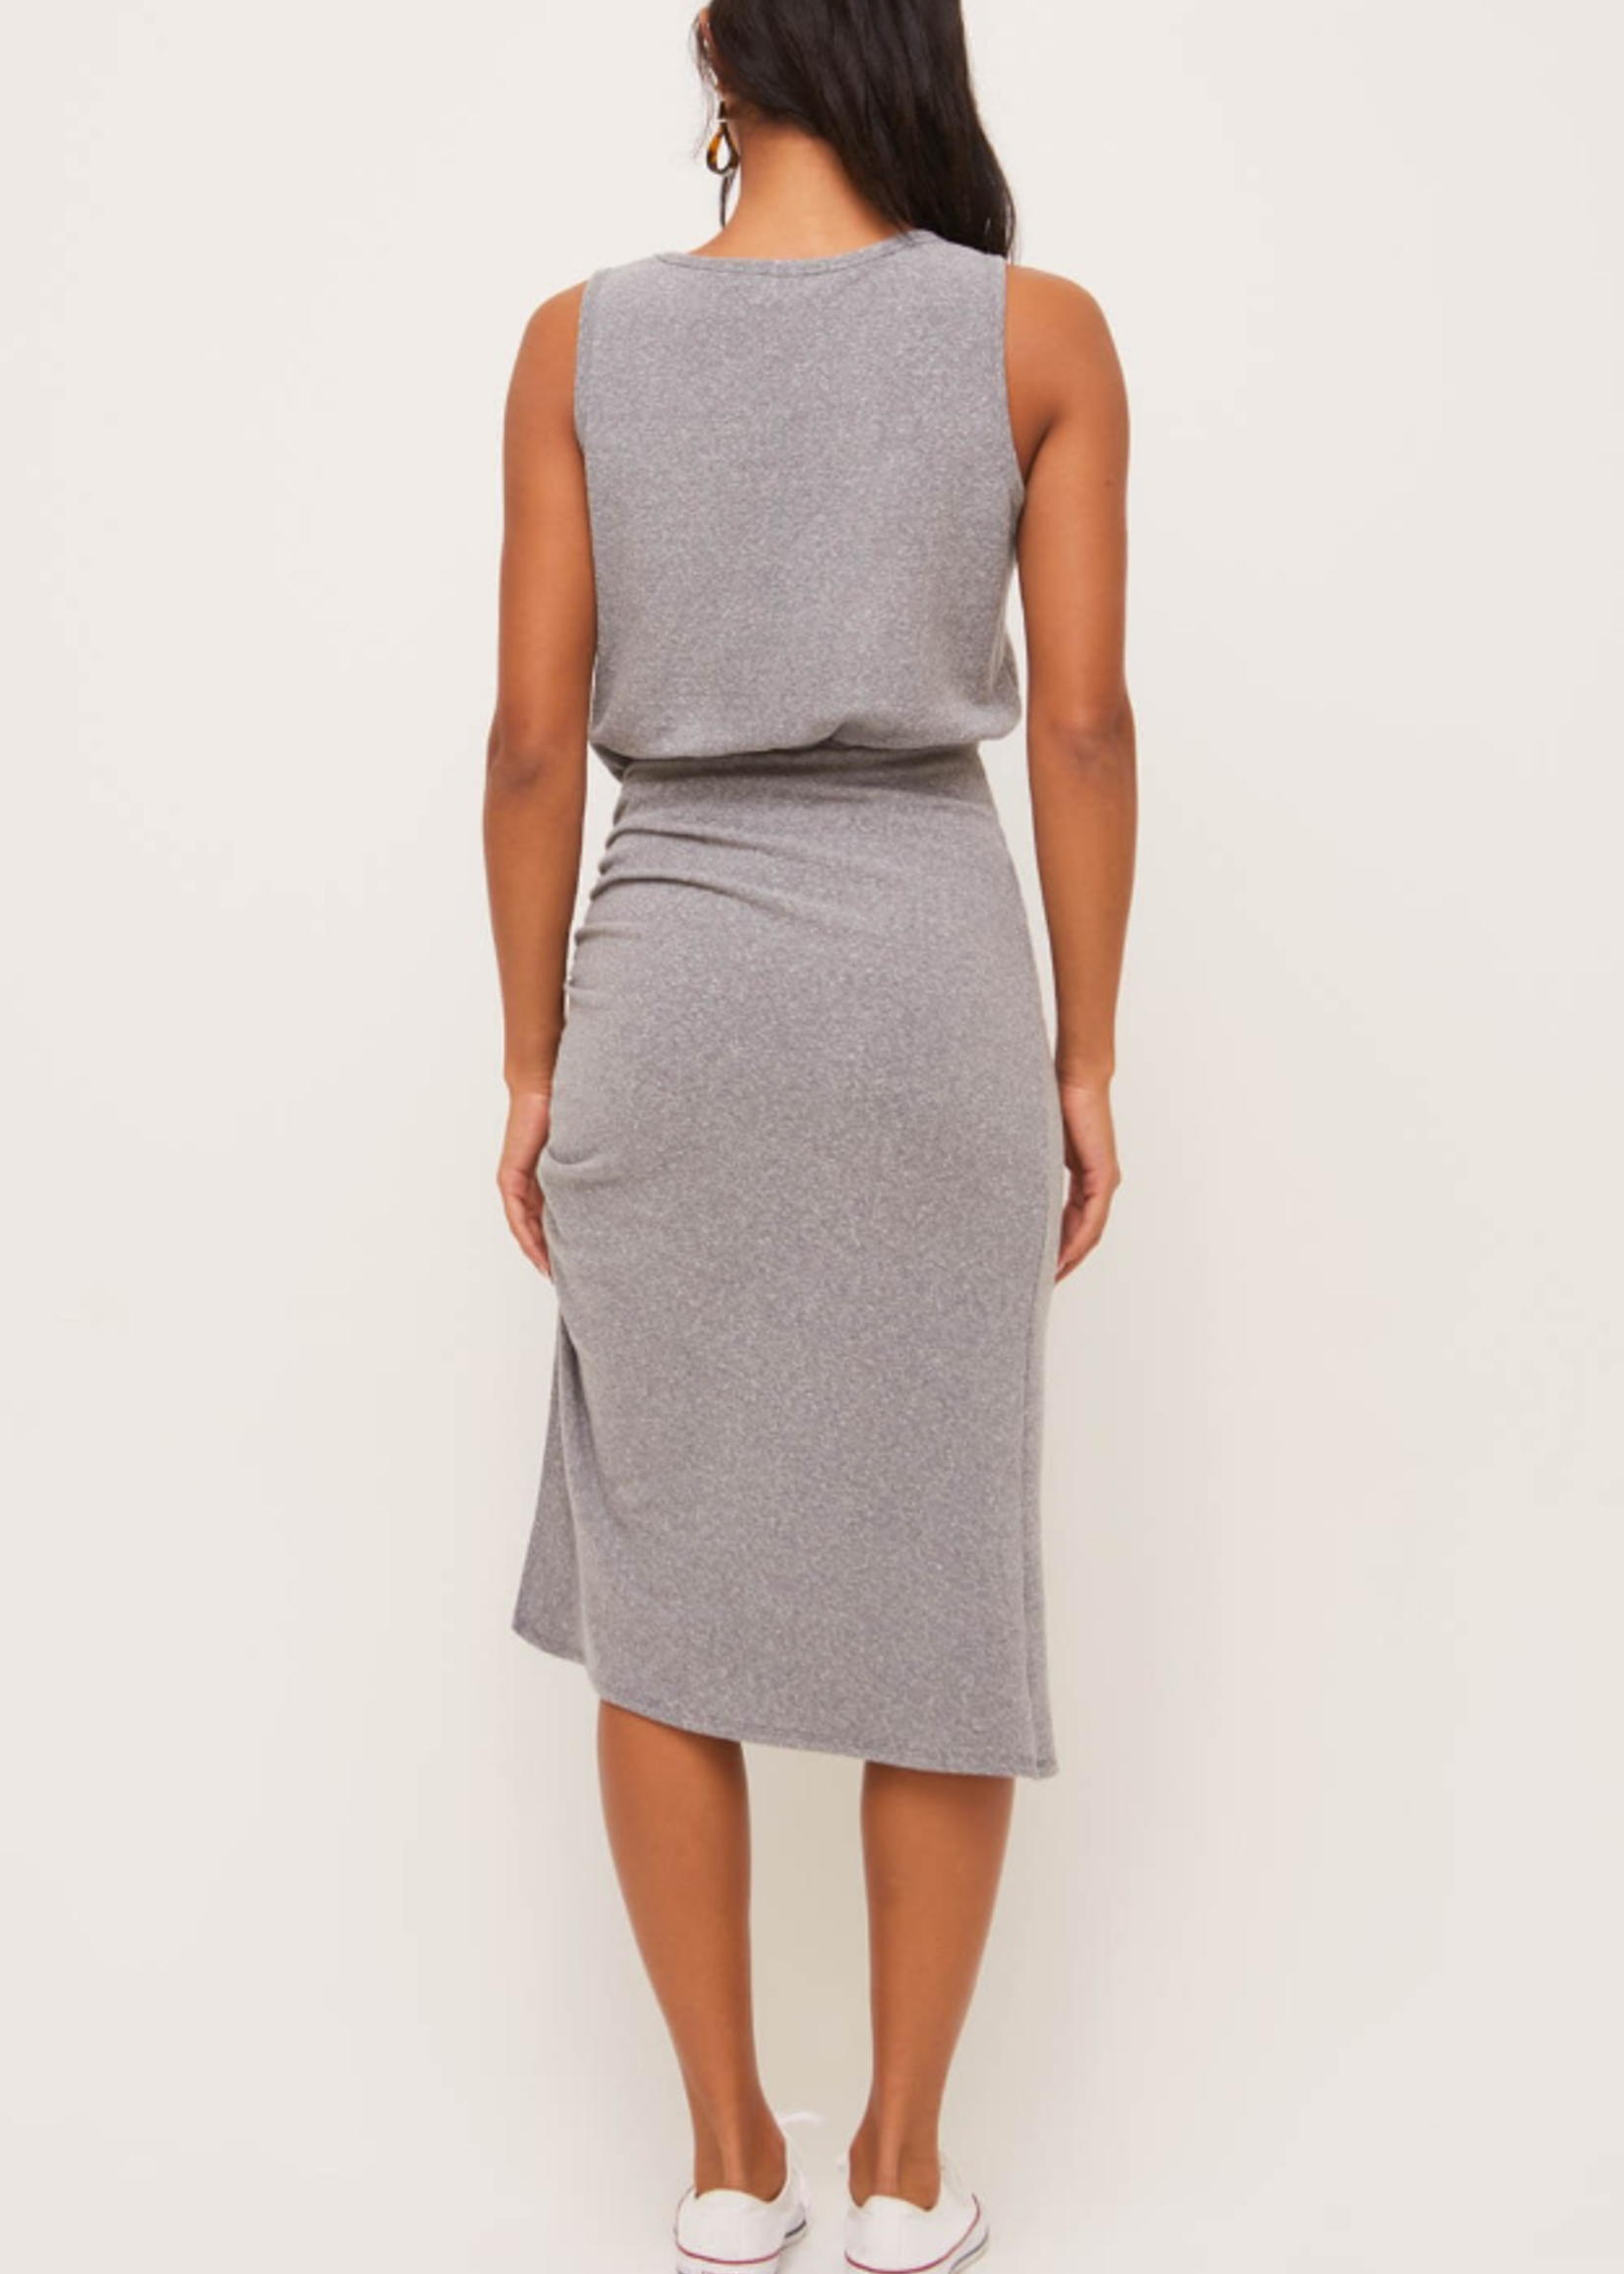 Lush Side Ruched Dress - Charcoal